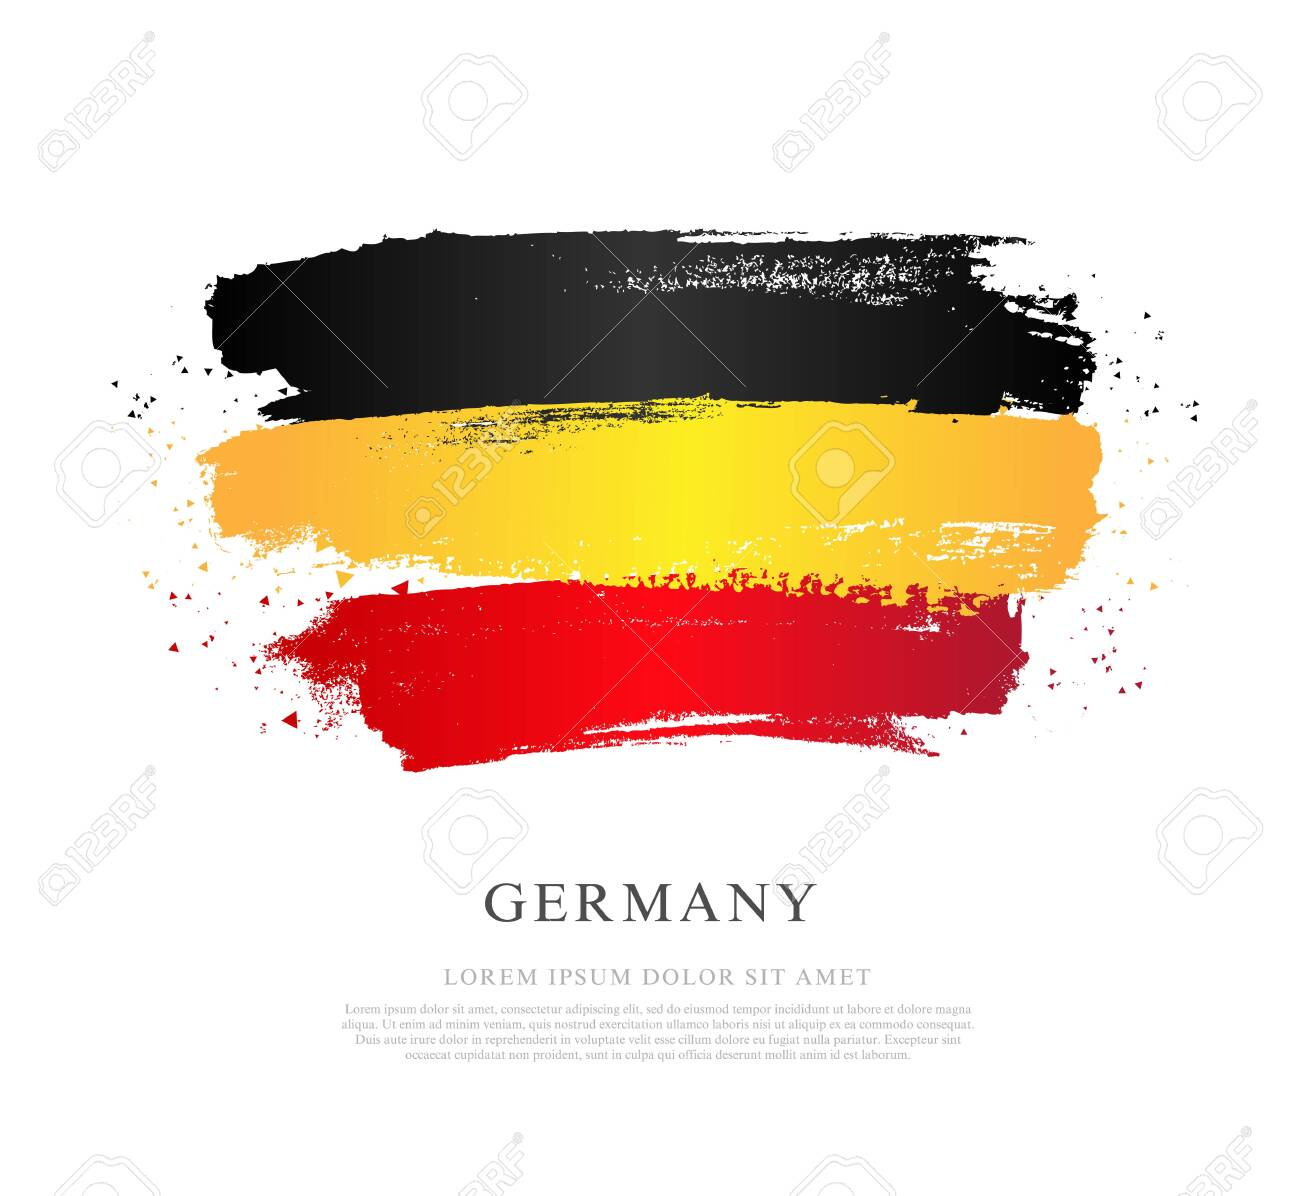 German Flag Vector Illustration On White Background Brush Strokes Royalty Free Cliparts Vectors And Stock Illustration Image 121406185